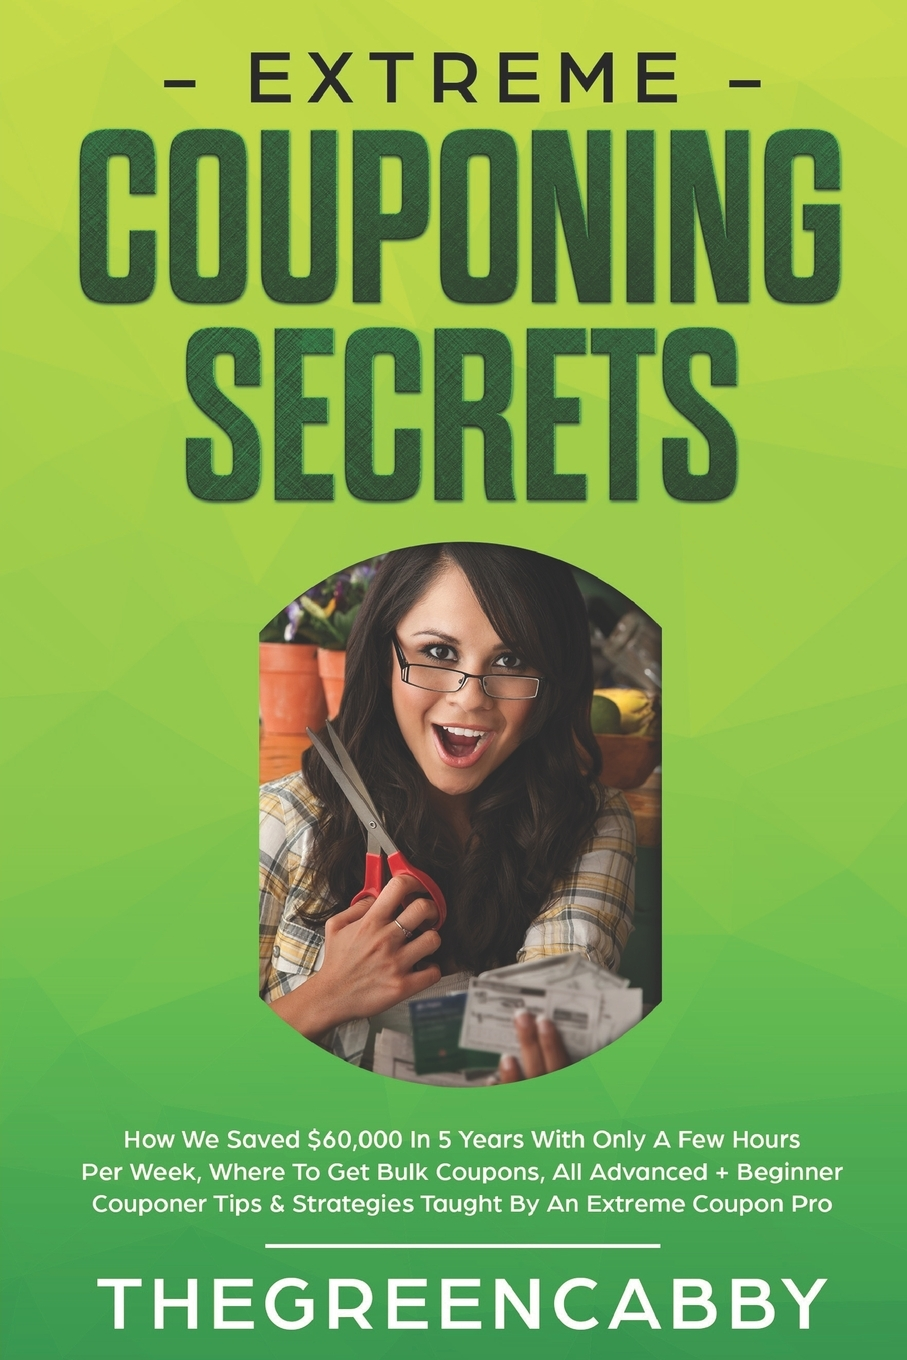 Extreme Couponing Secrets: How We Saved $60,000 In 5 Years ...